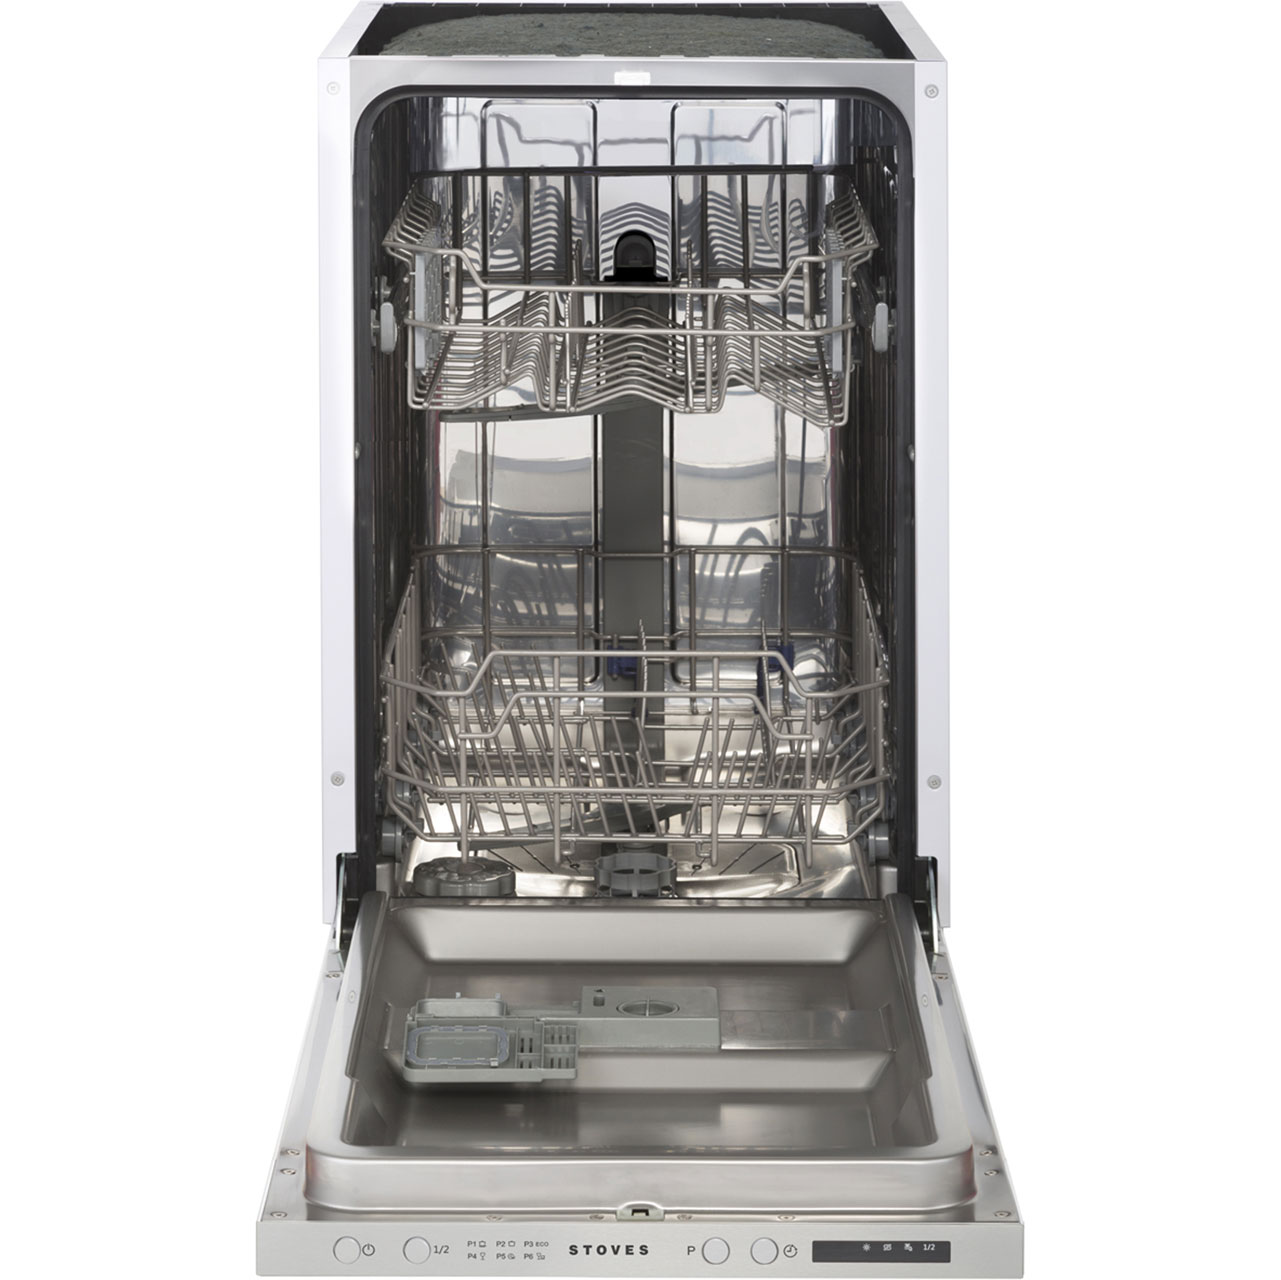 Image of Stoves SDW45 Integrated Slimline Dishwasher in Silver